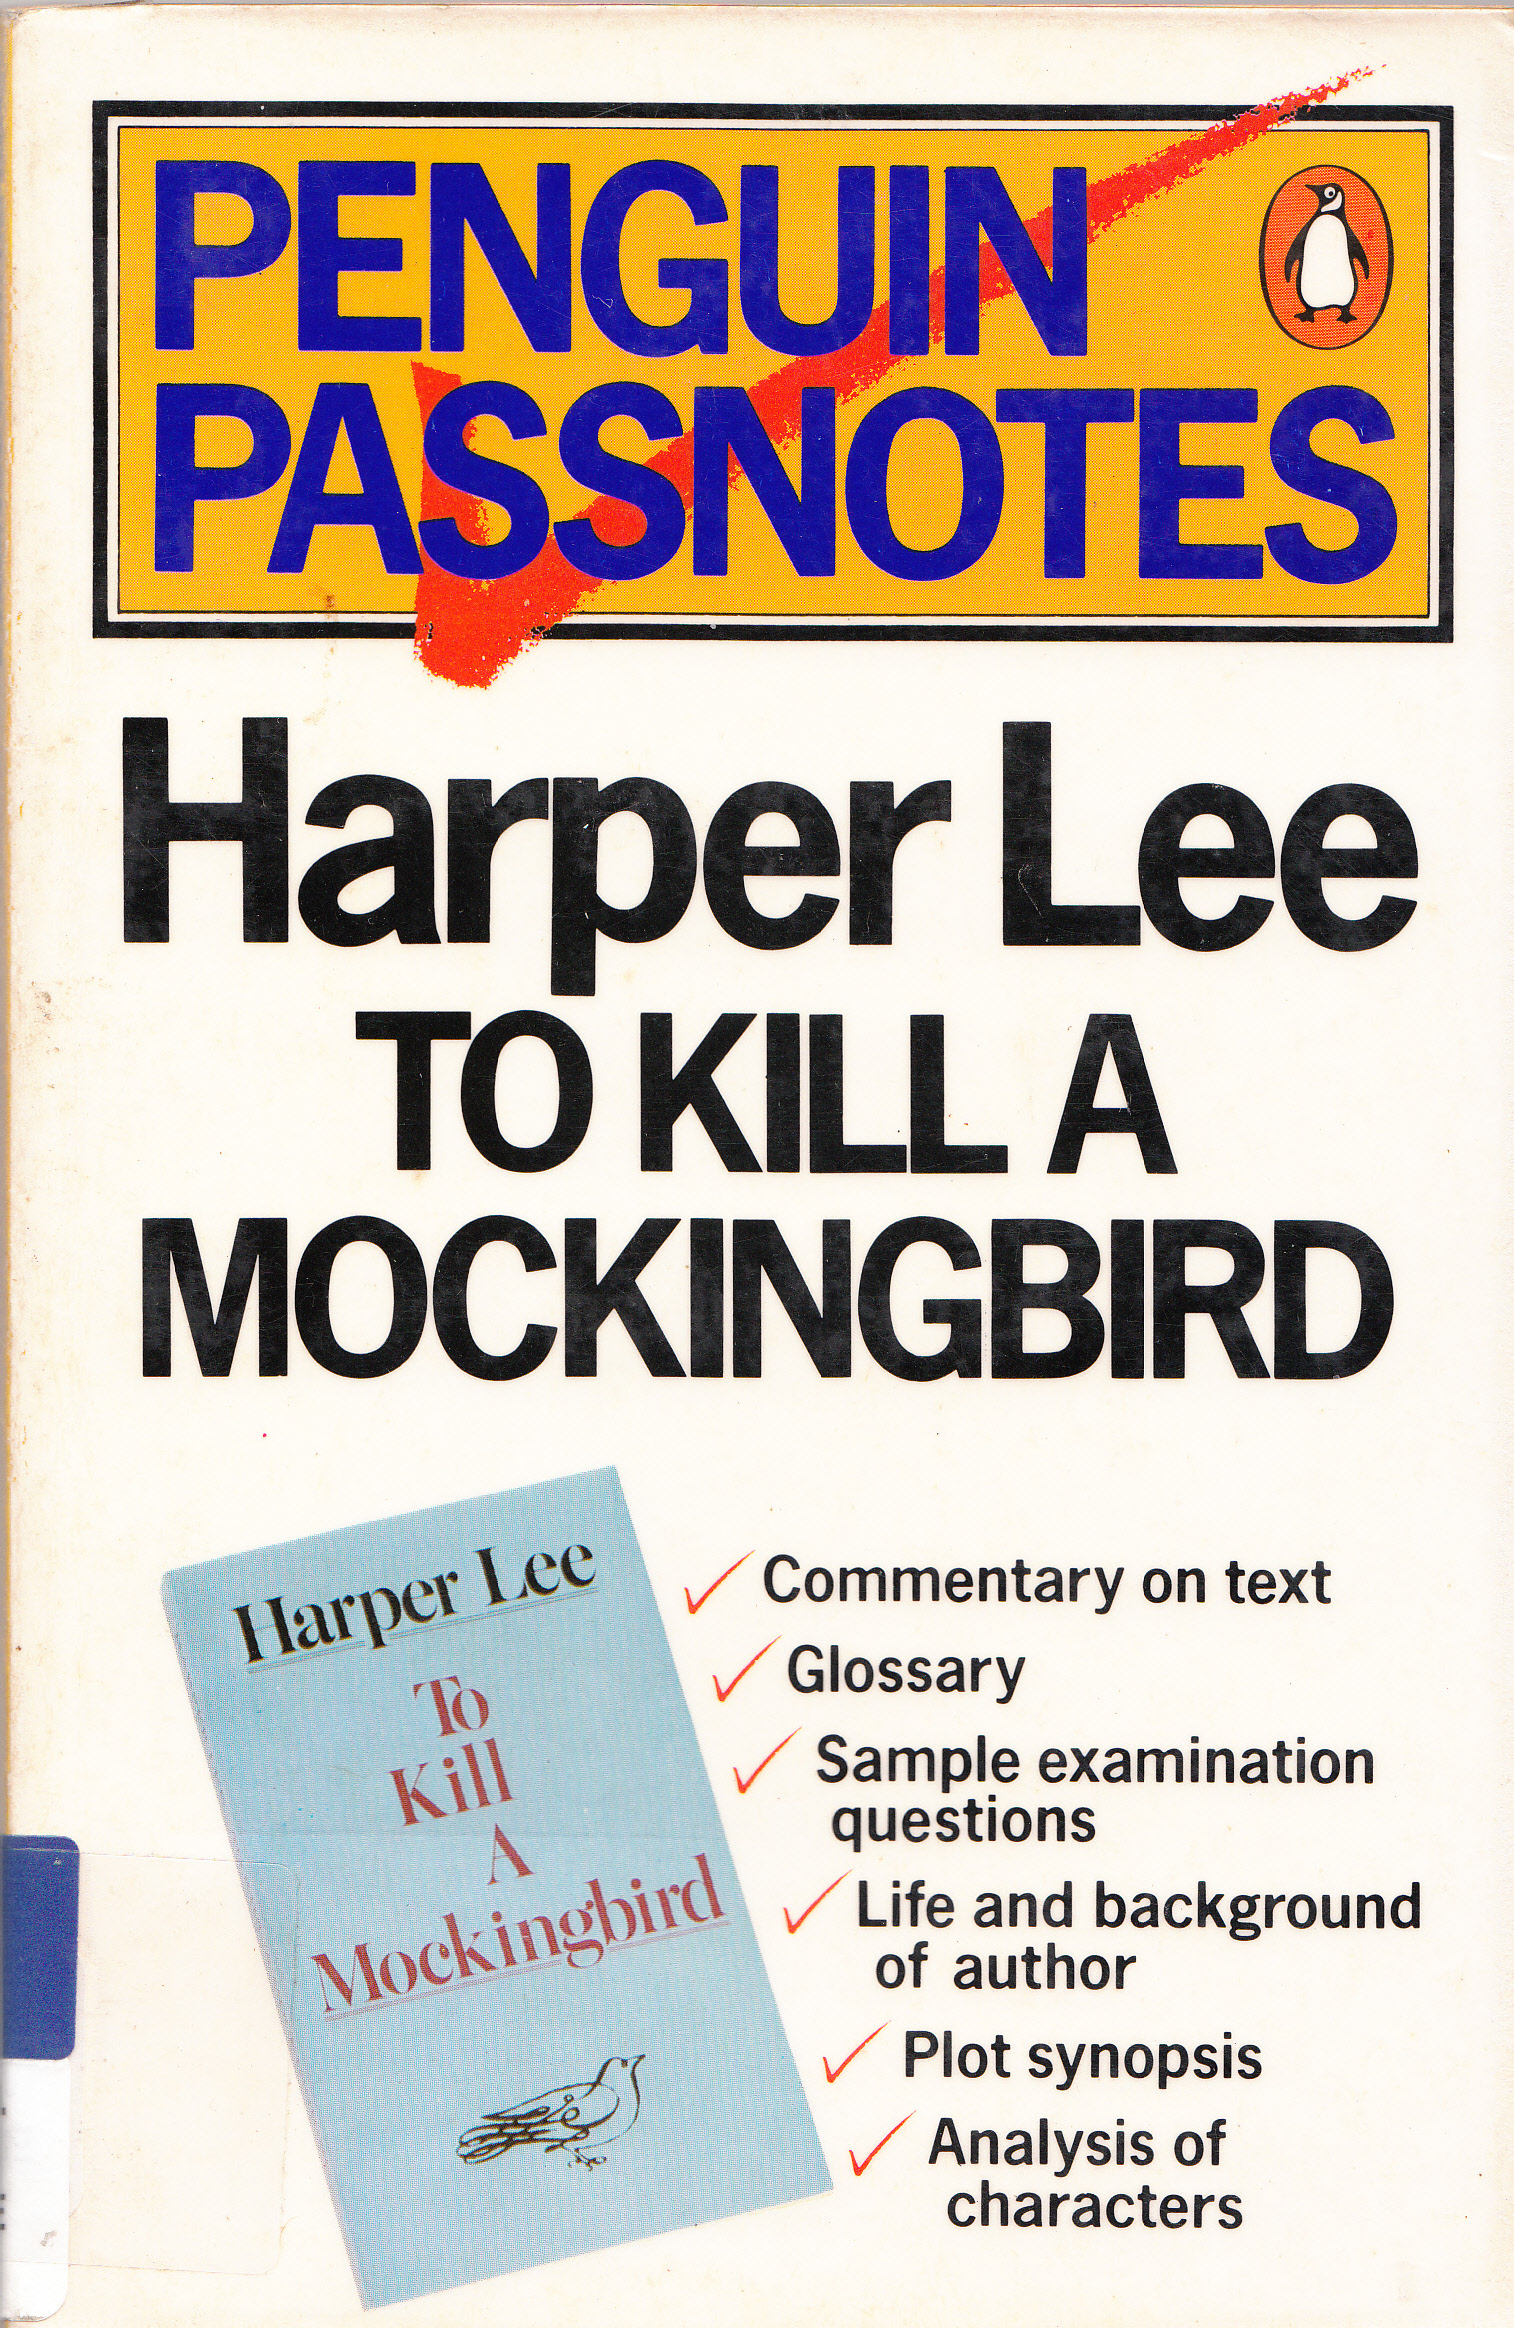 how to kill a mockingbird commentary